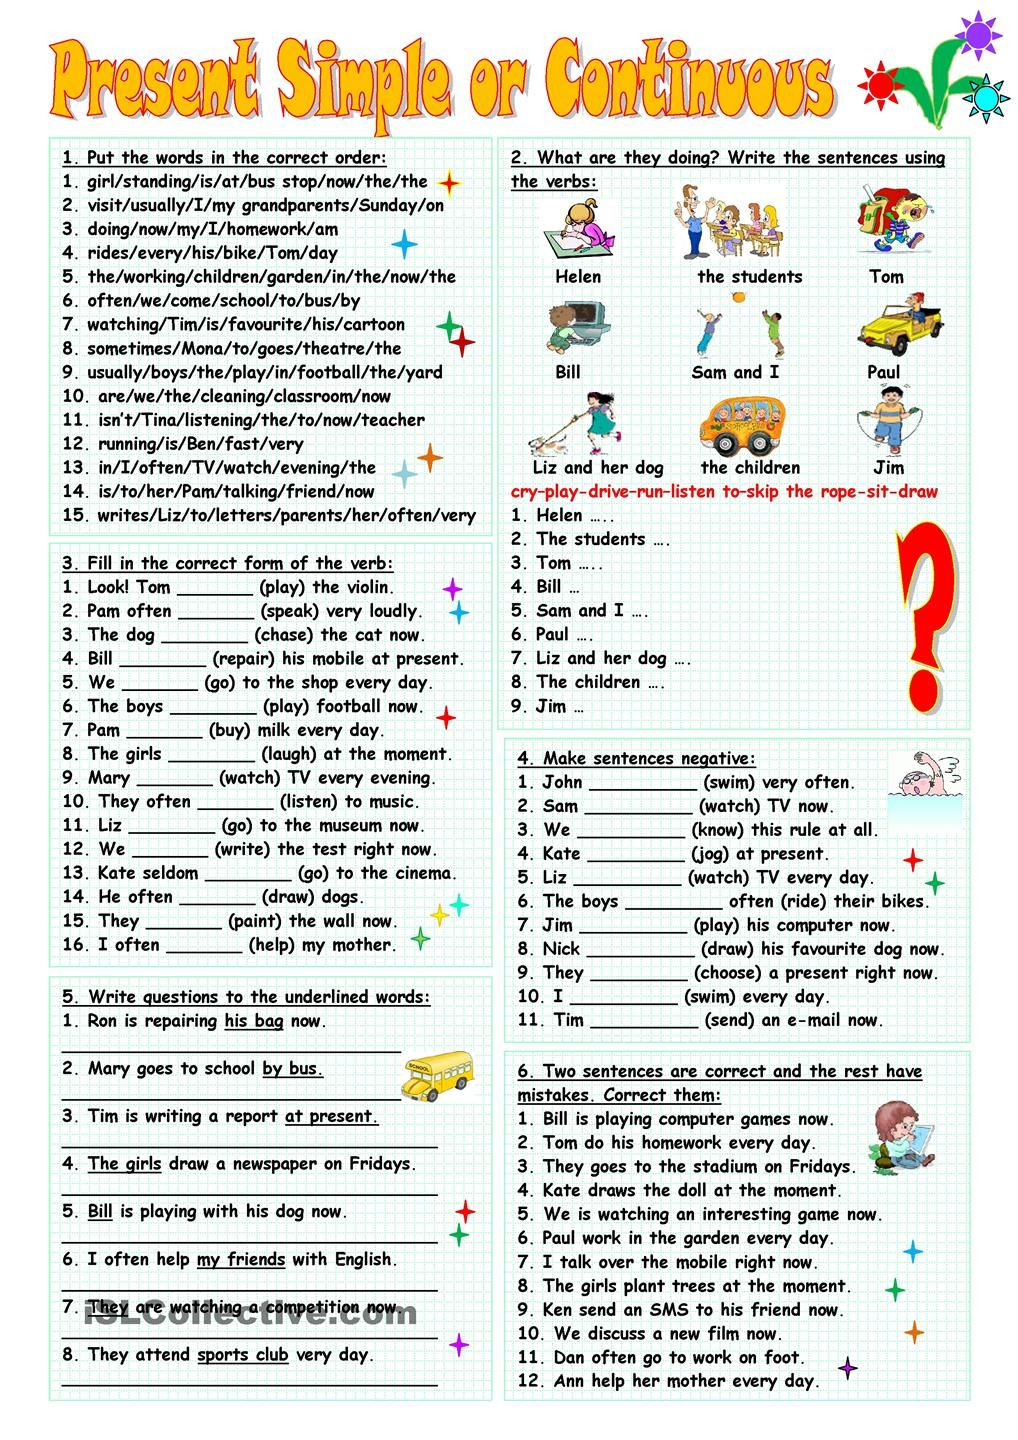 Present Simple Or Continuous English Grammar English Grammar Worksheets Grammar